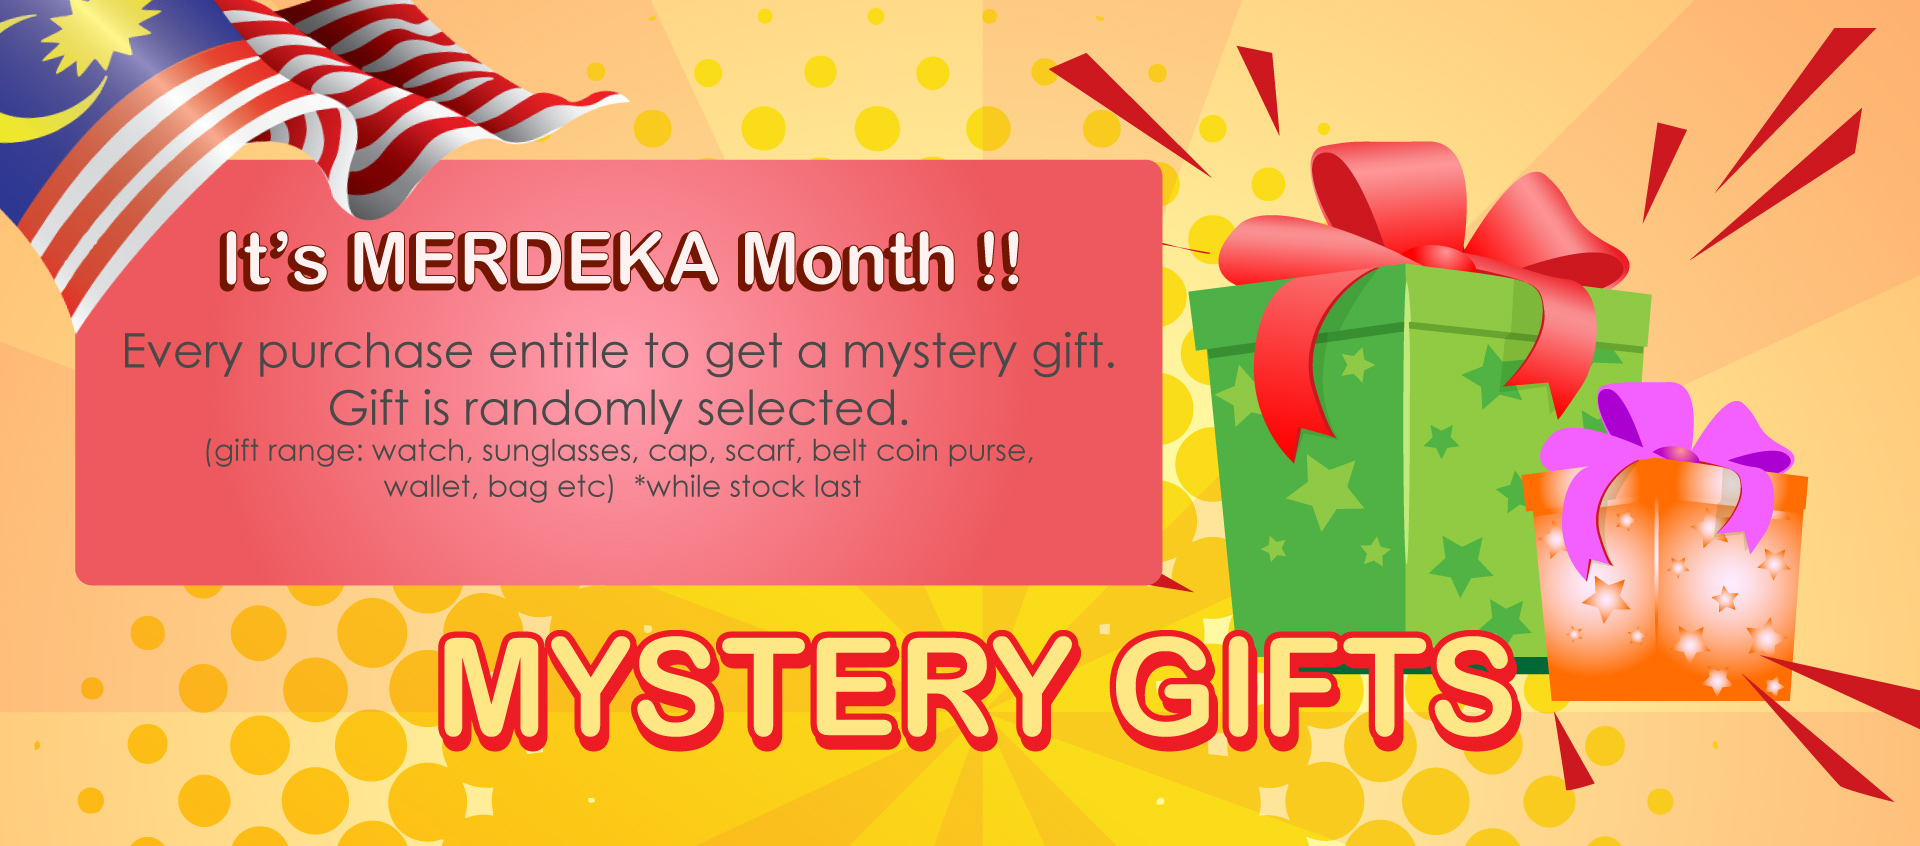 AUG mystery gifts